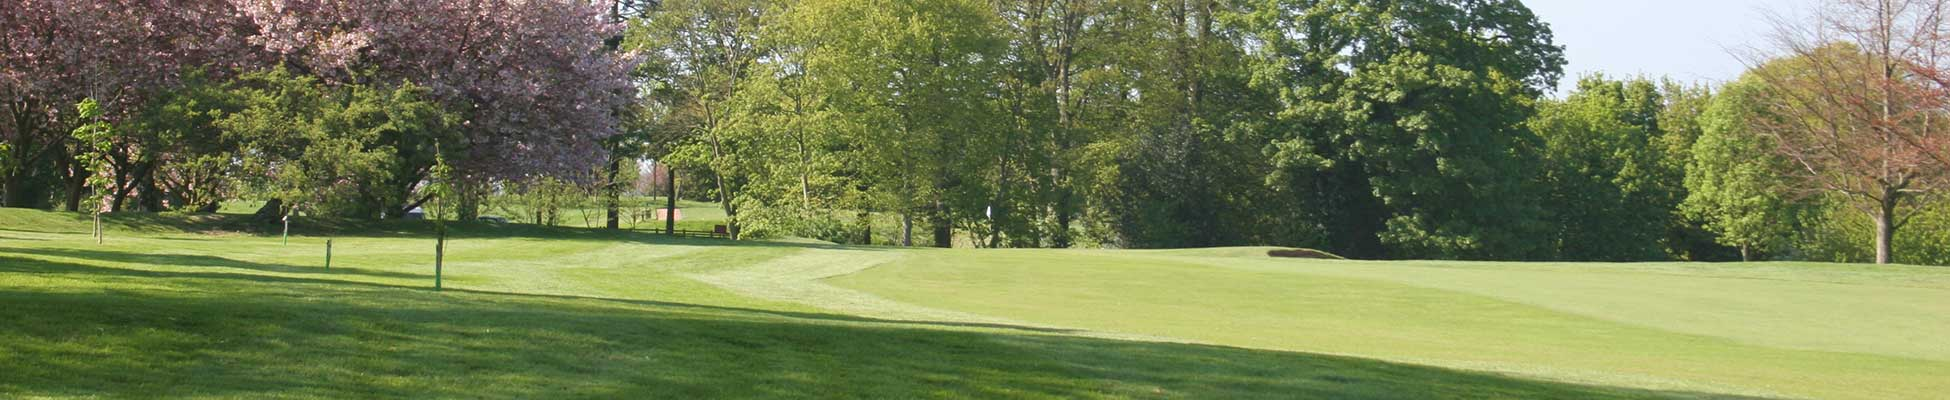 Hexham Golf Course